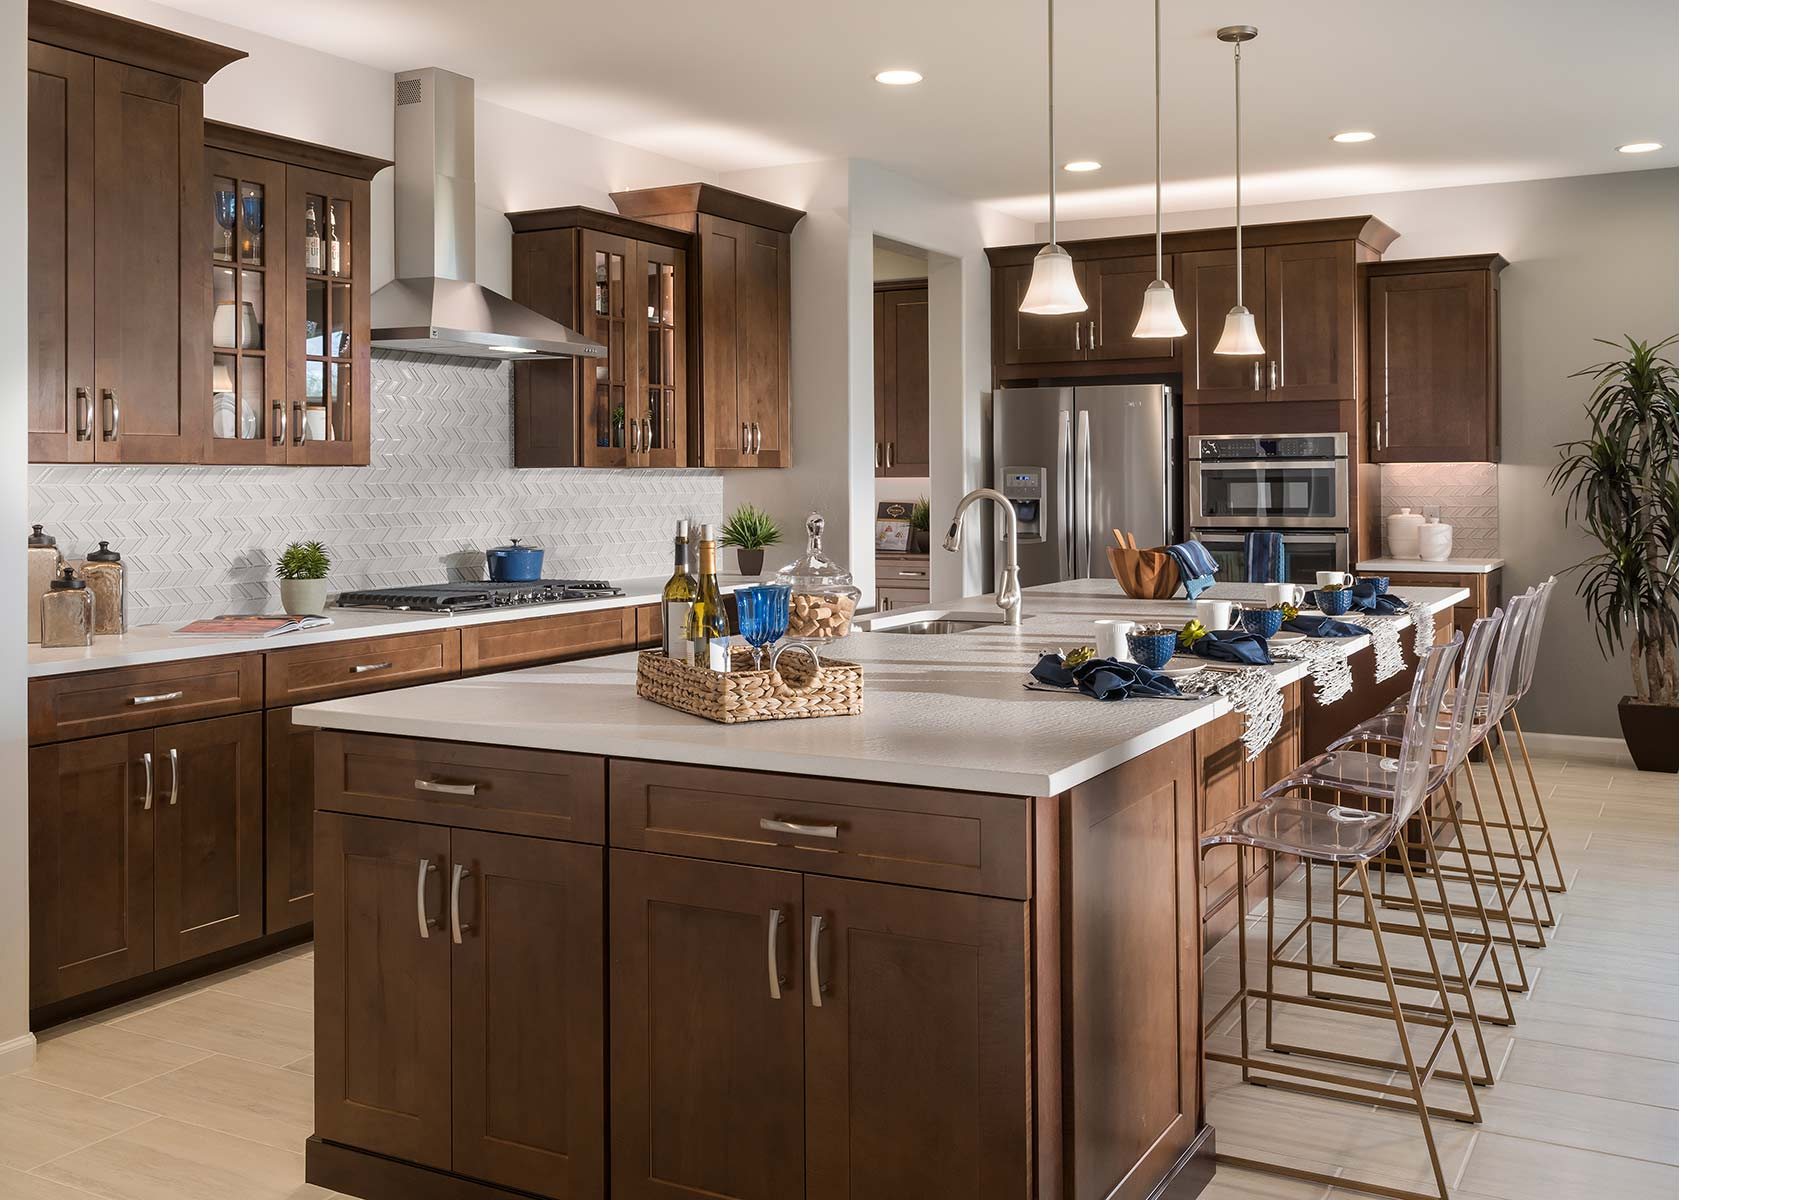 Sycamore Plan Kitchen at Dove Mountain in Marana Arizona by Mattamy Homes